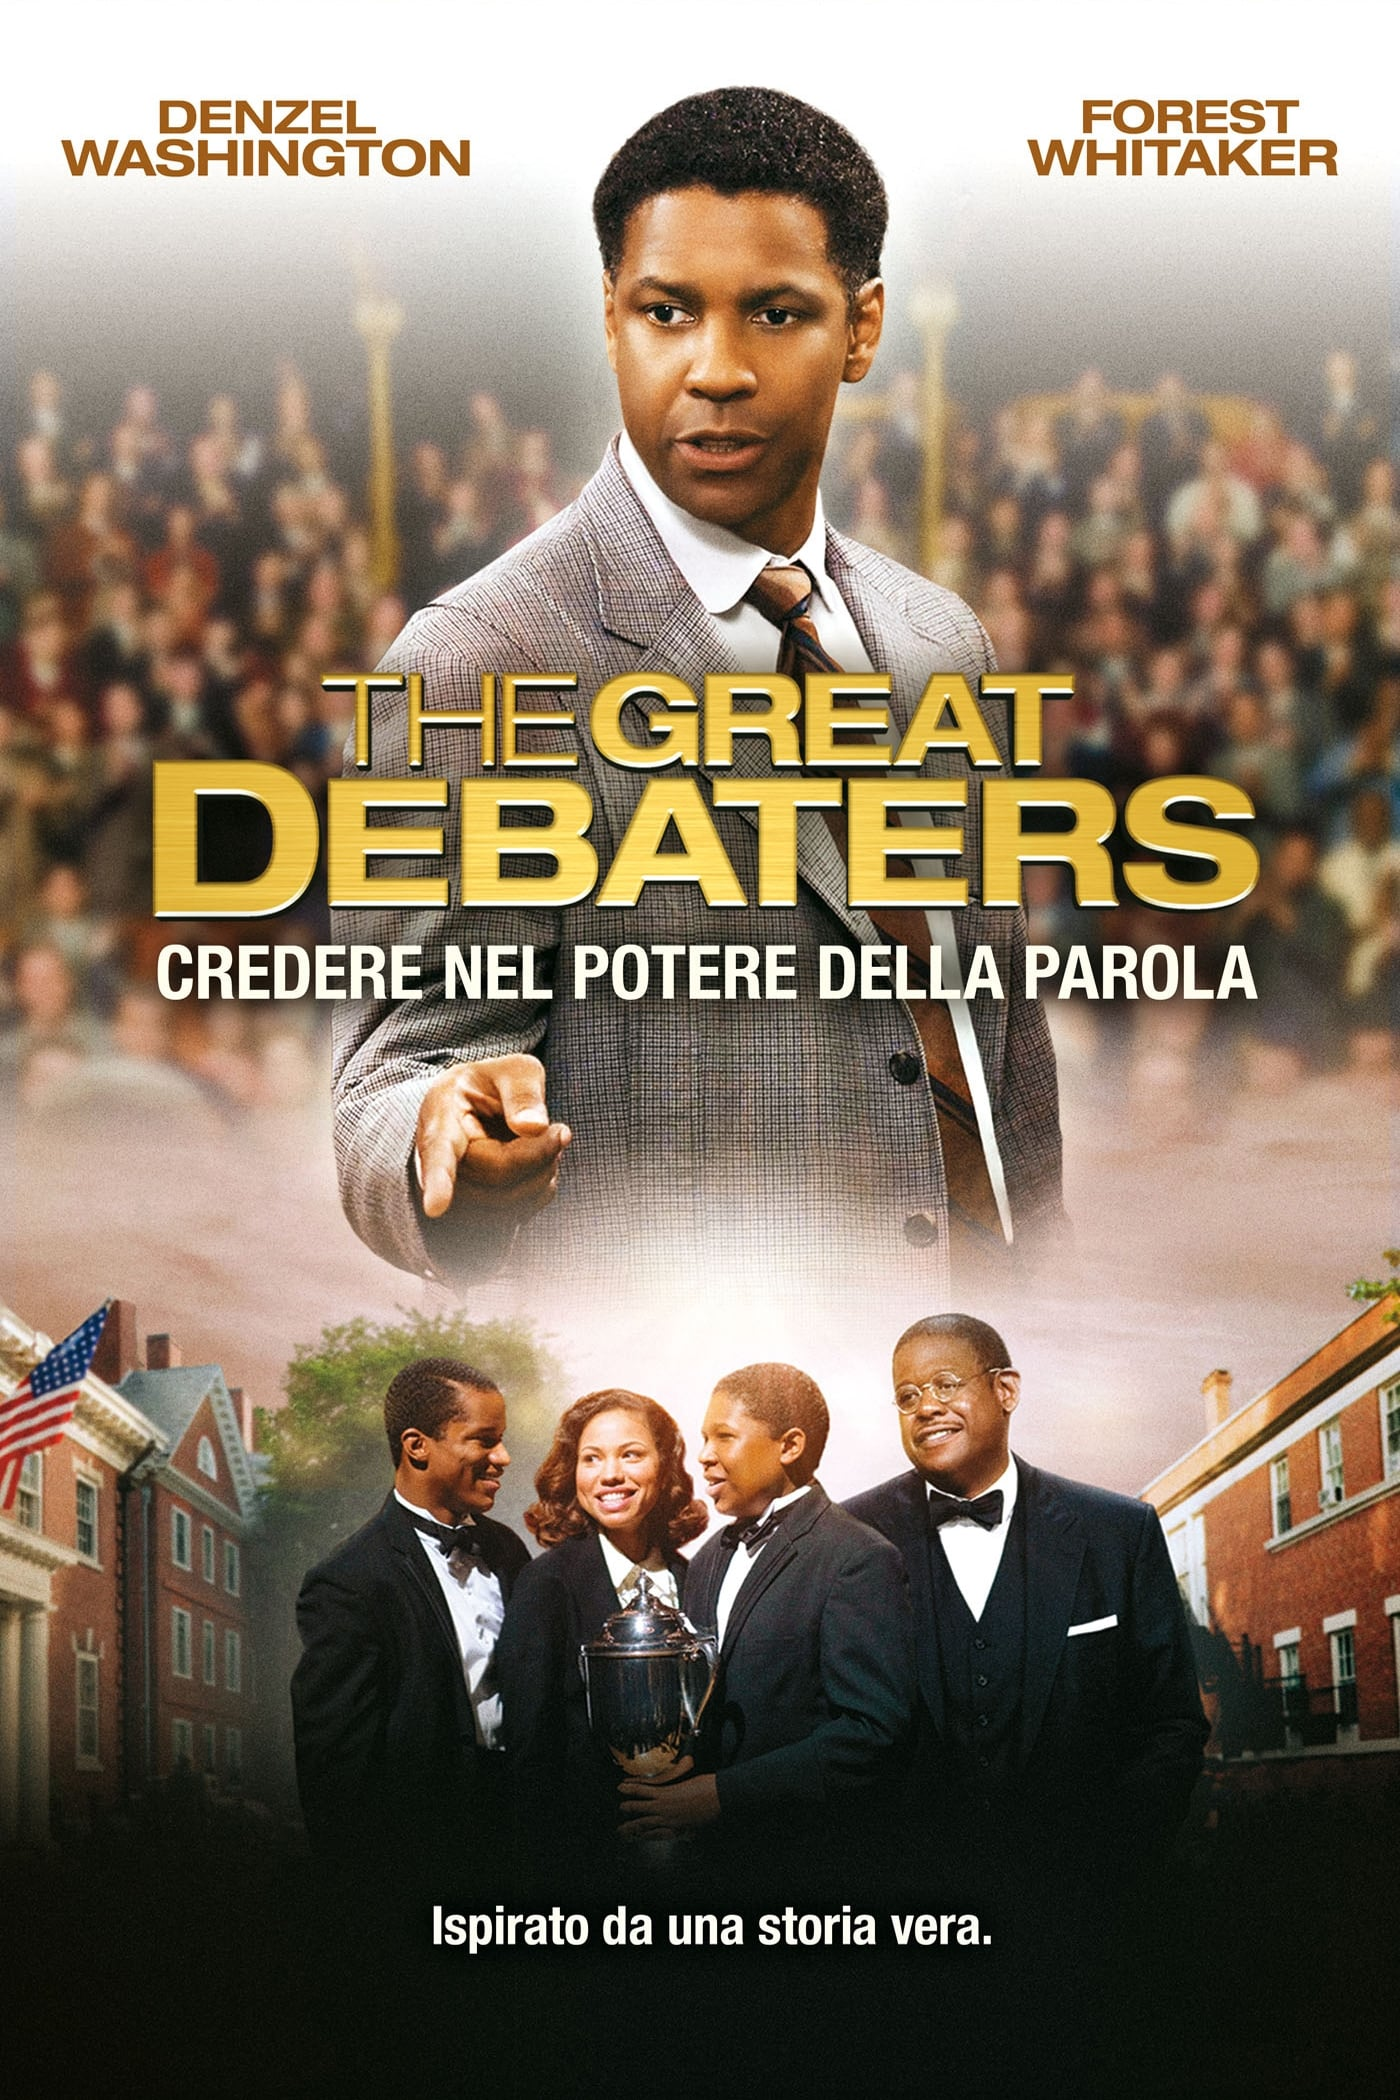 the debaters The great debaters melvin b tolson is the kind of educator who truly did recognize the remarkable powers of knowledge his students possessed the great debaters is based on a true story about an outspoken wiley college professor who boldly challenged the discriminatory jim crow laws of the 1930s.